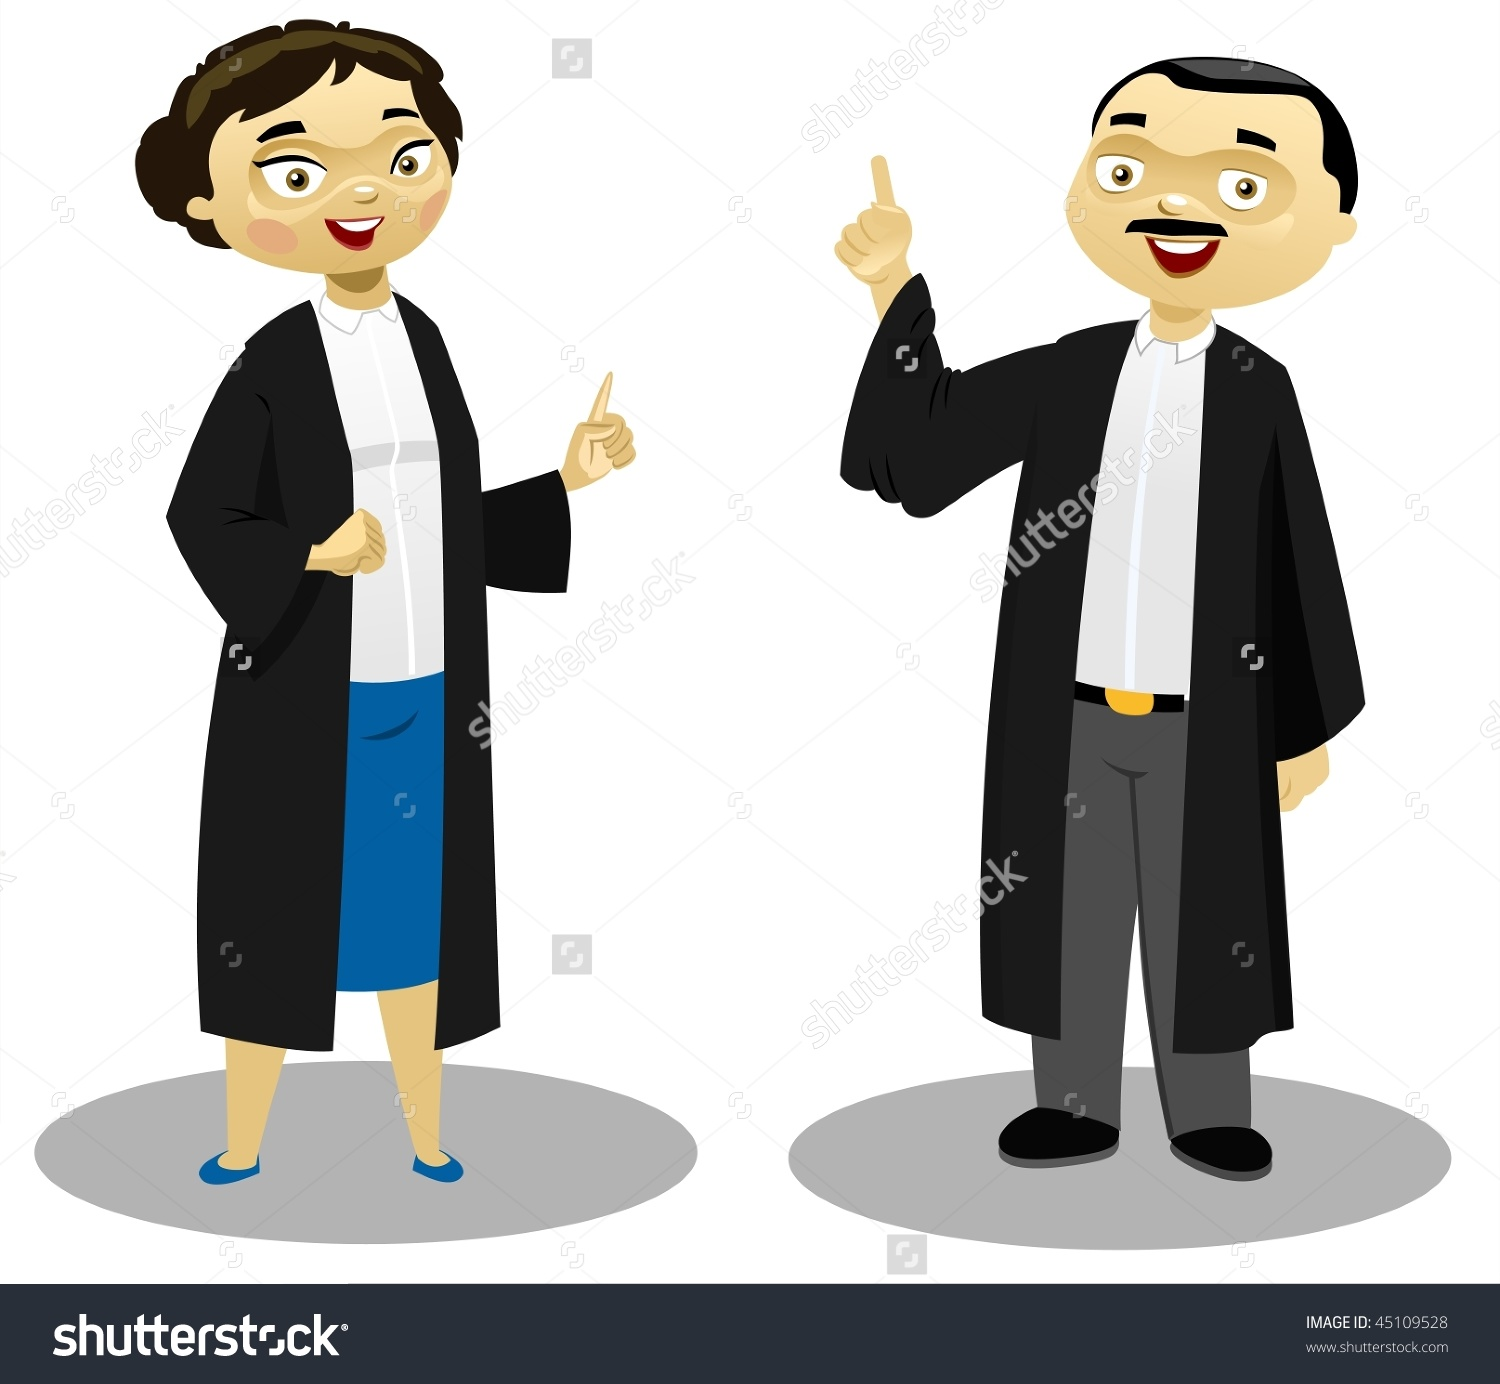 how to draw a female lawyer